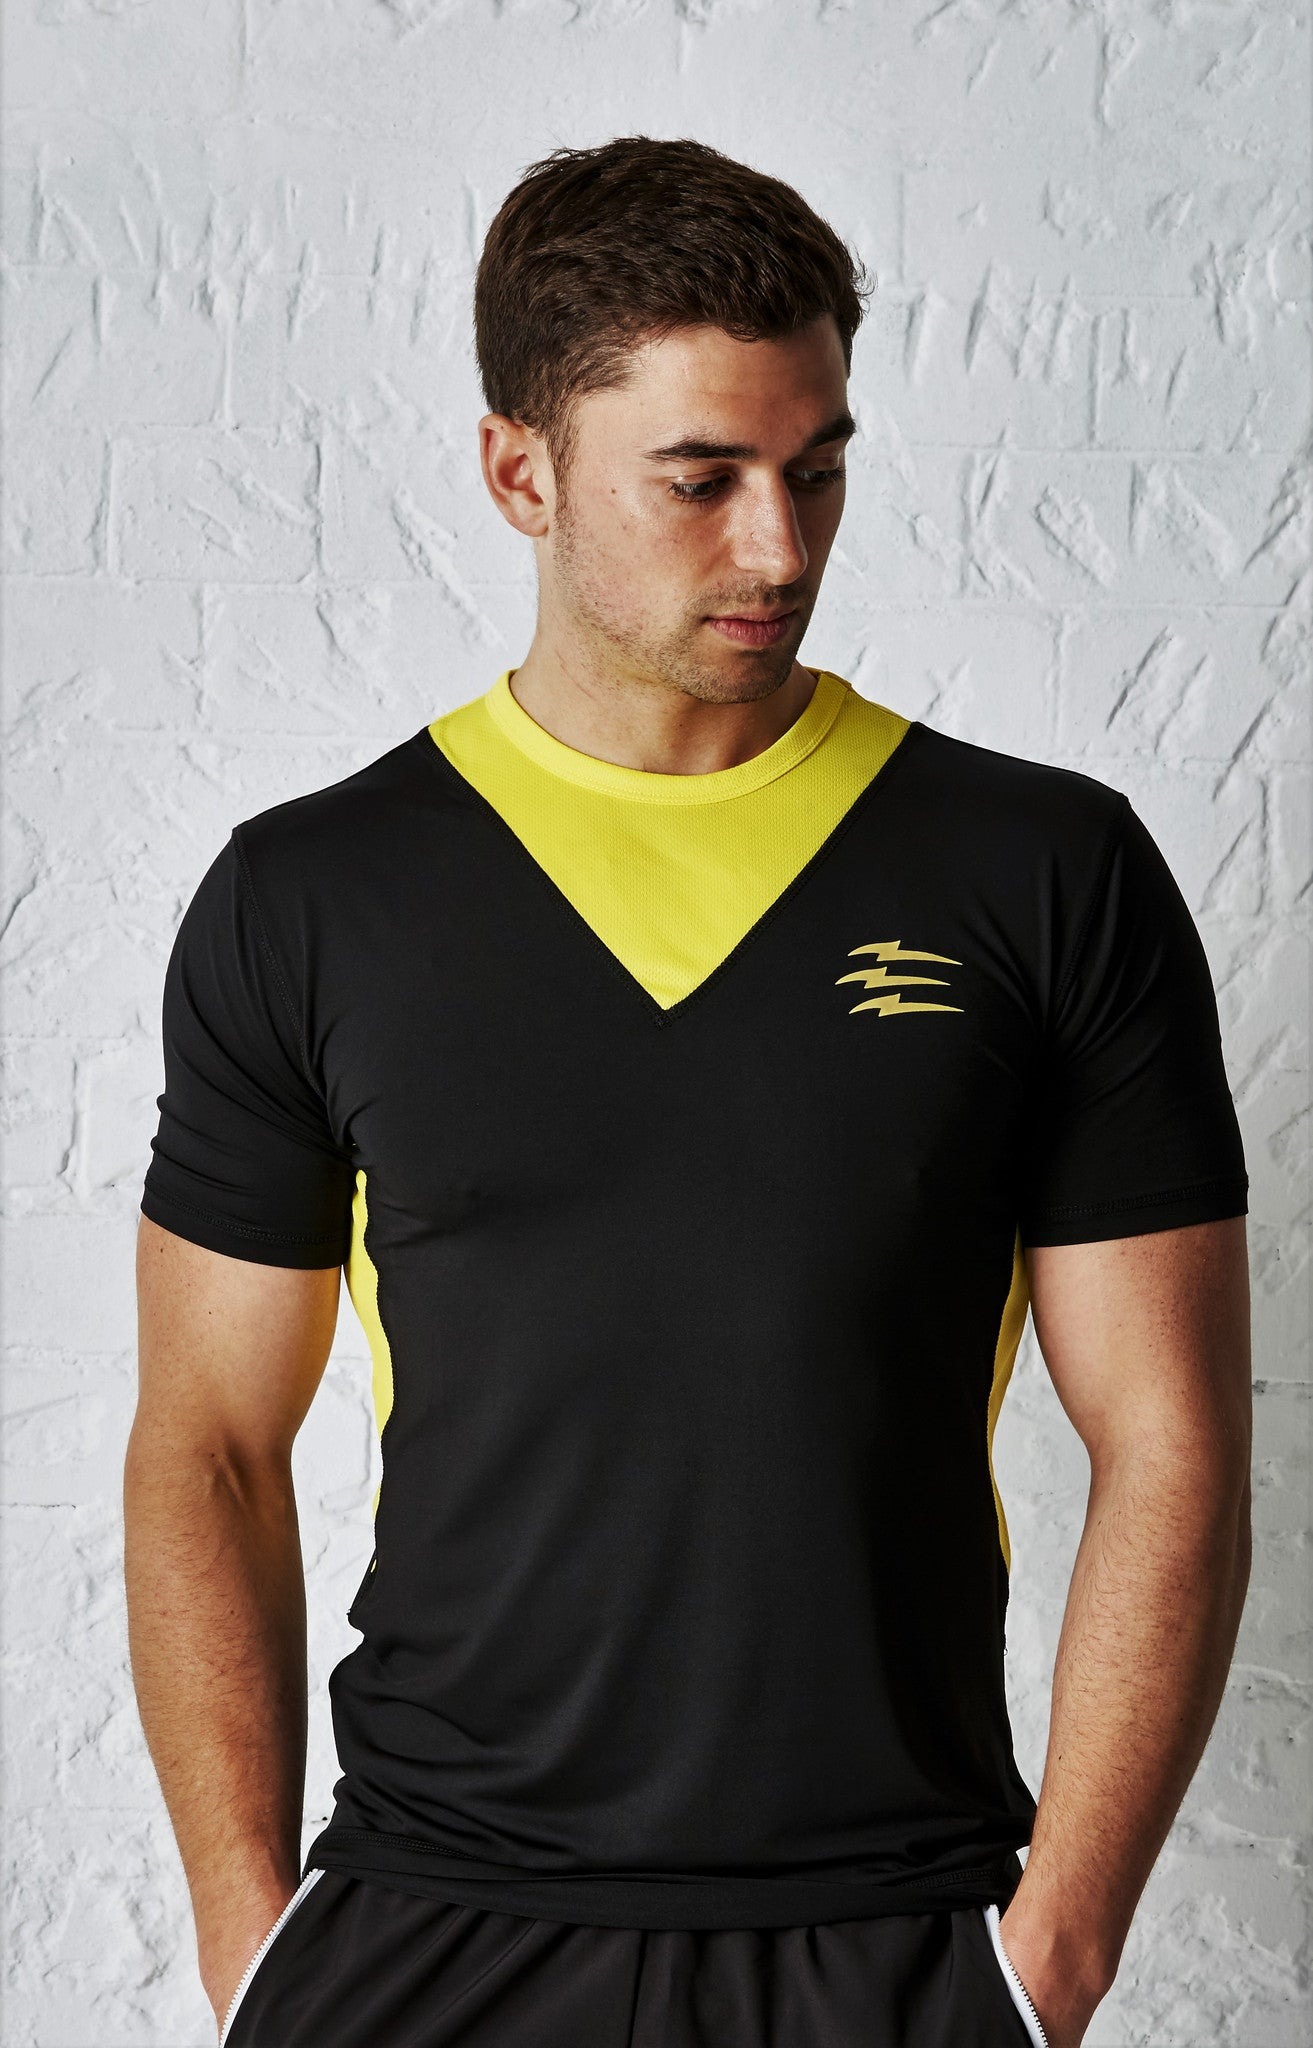 PREDACORE ASPECT T-SHIRT - BLACK/YELLOW